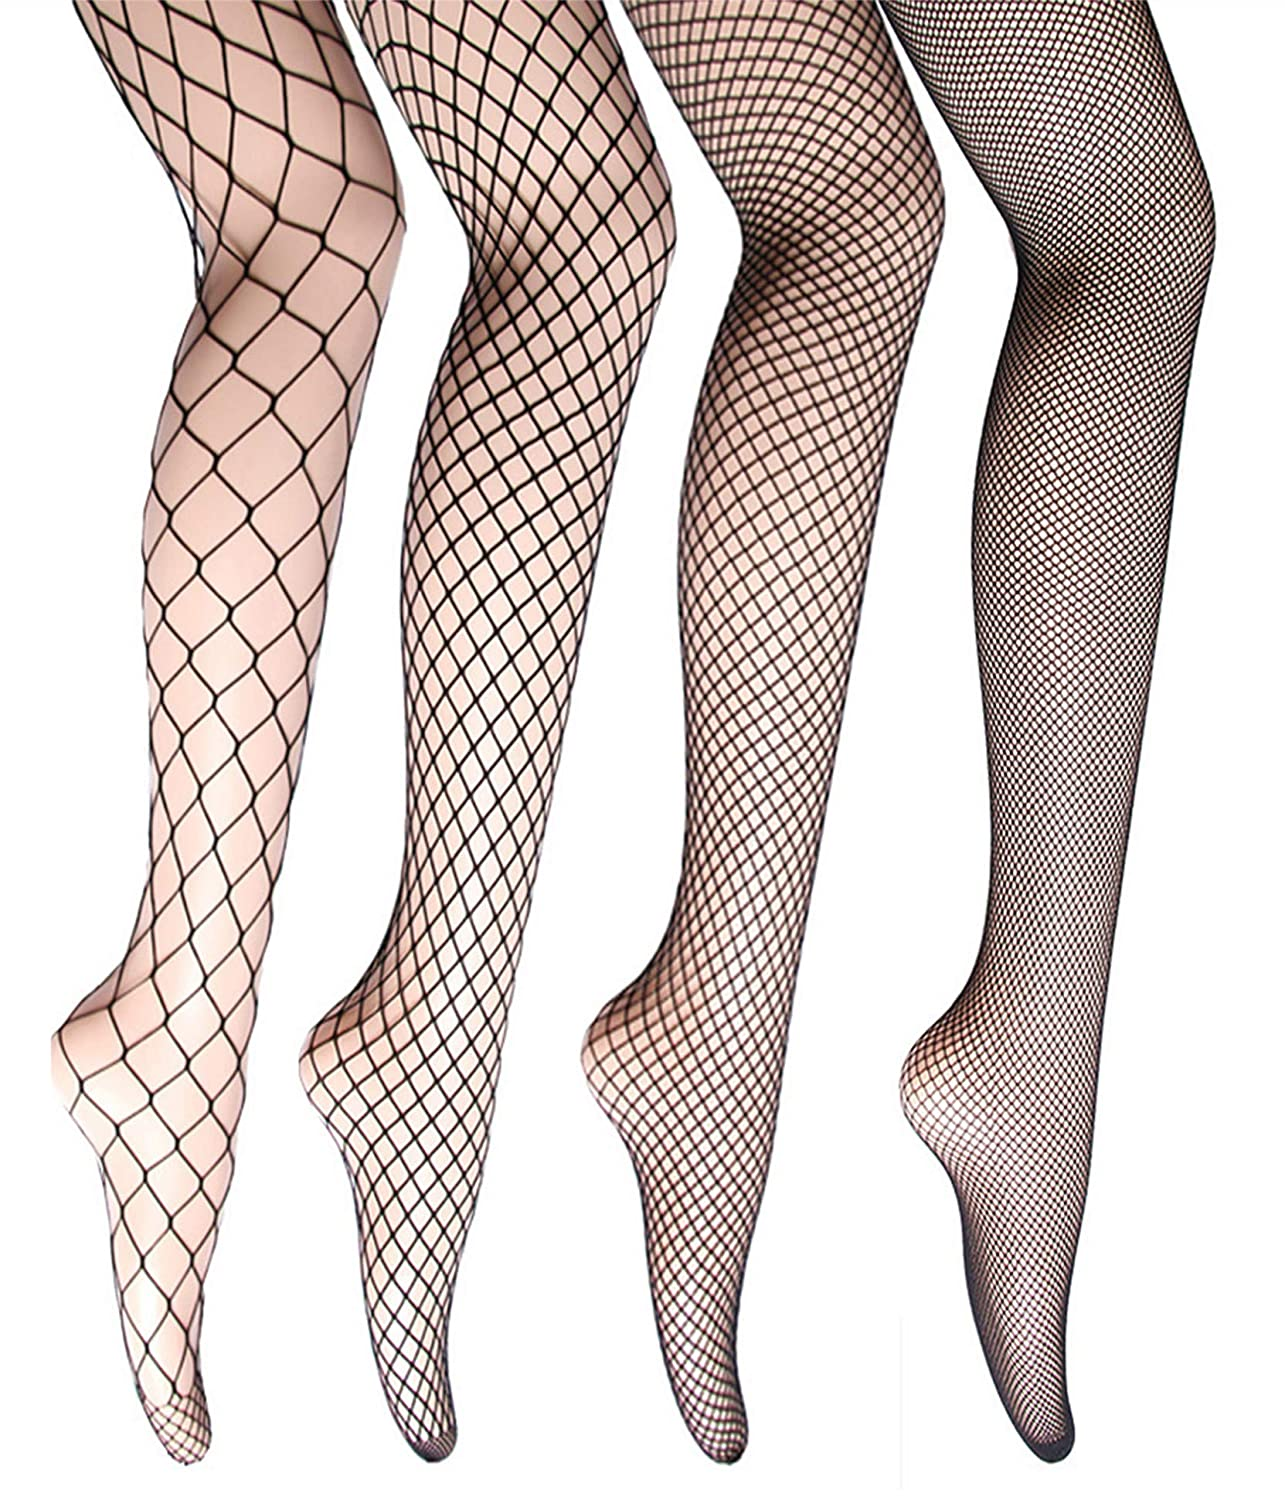 c8faf05b8521ac Fishnet Stockings High Waist Tights for Women Cross Thigh High Pantyhose at  Amazon Women's Clothing store: